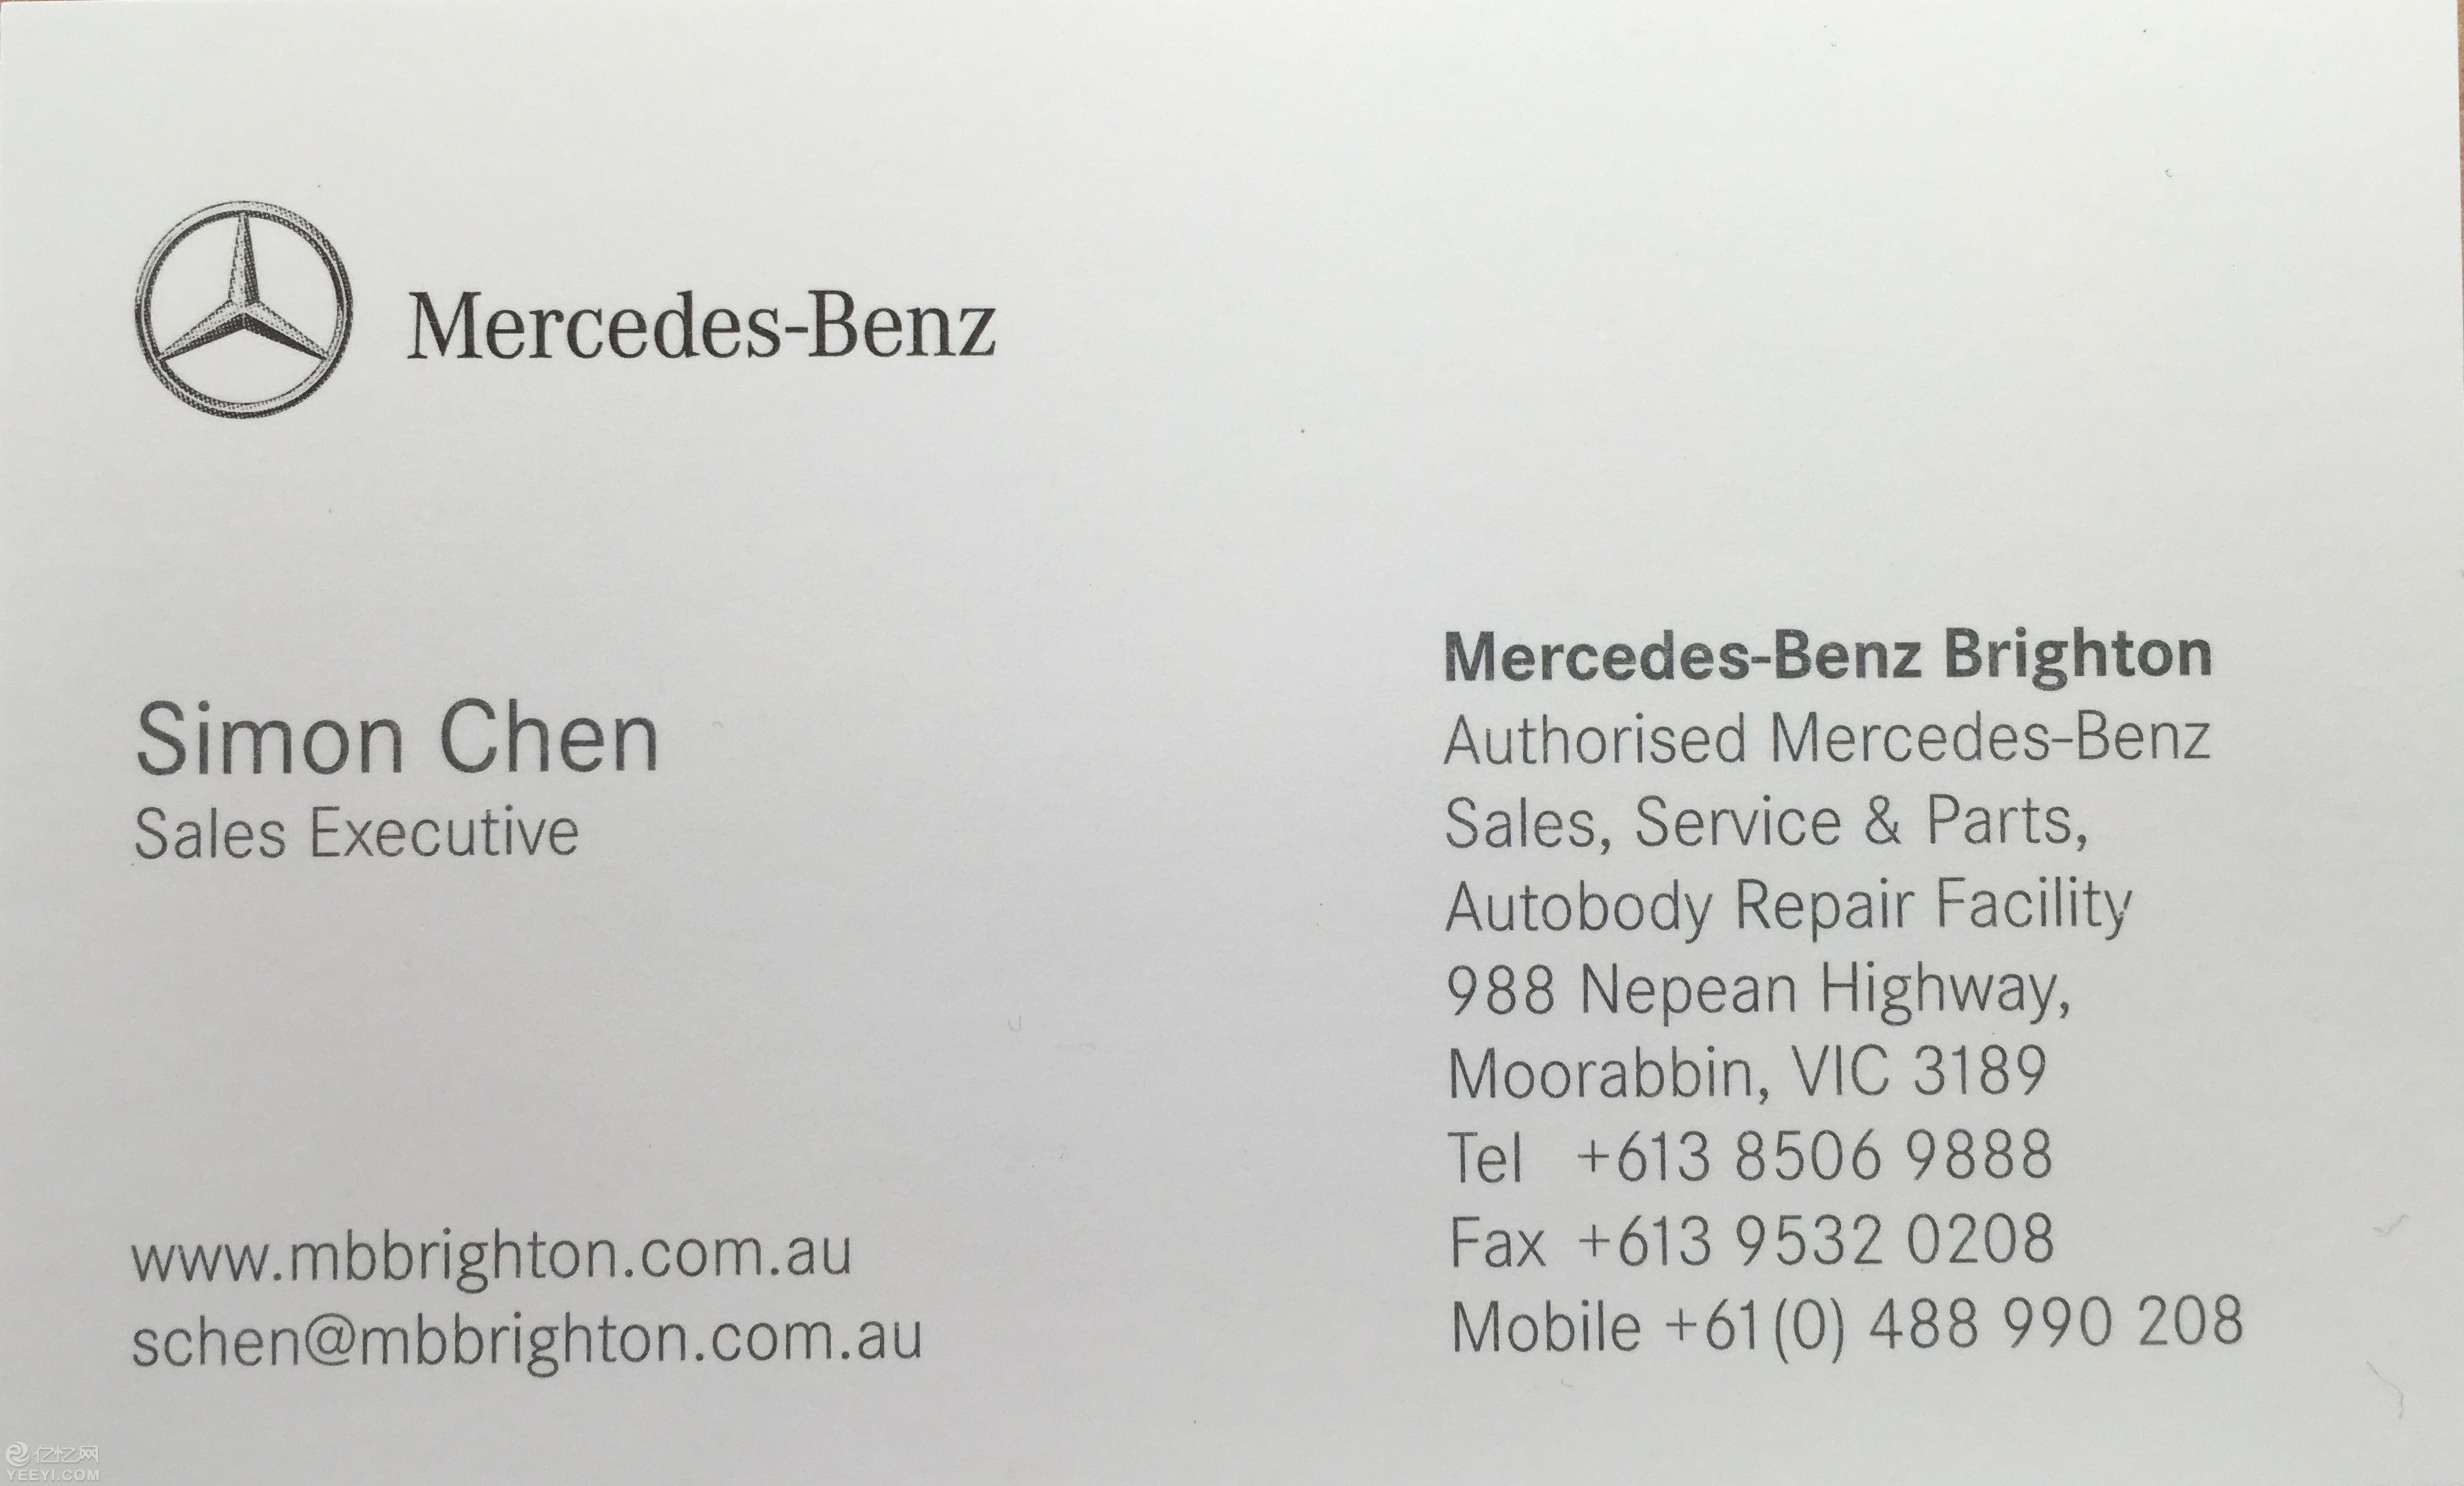 Mercedes Benz Business Cards Image collections - Business Card Template